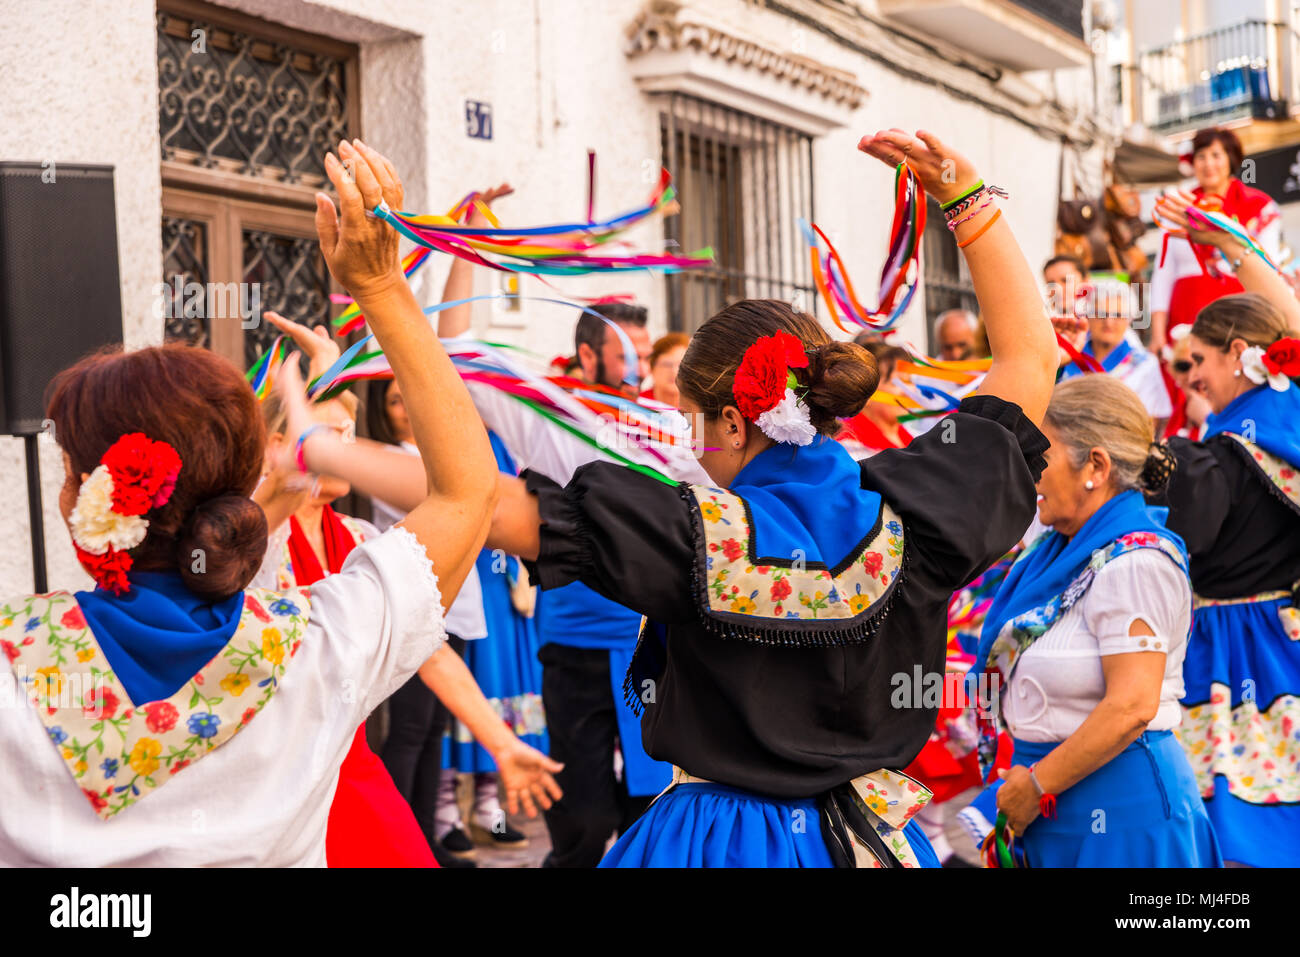 NERJA, SPAIN - MAY 04, 2018 people participating in a traditional